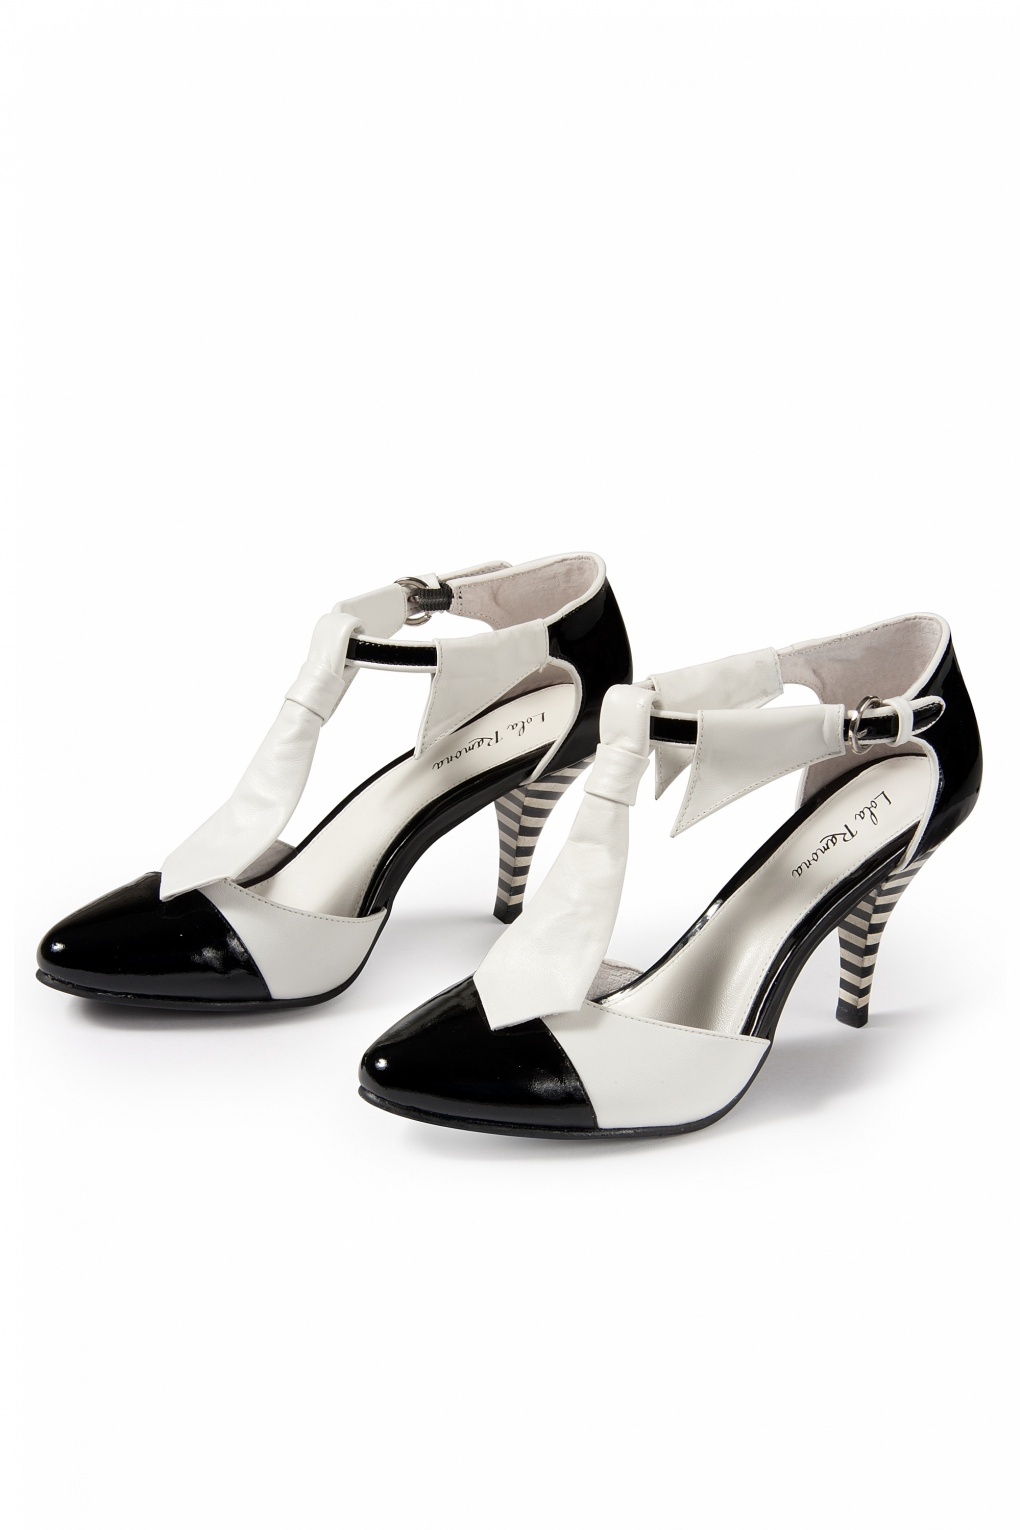 5620dbd21e83 Stiletto White Tie pumps